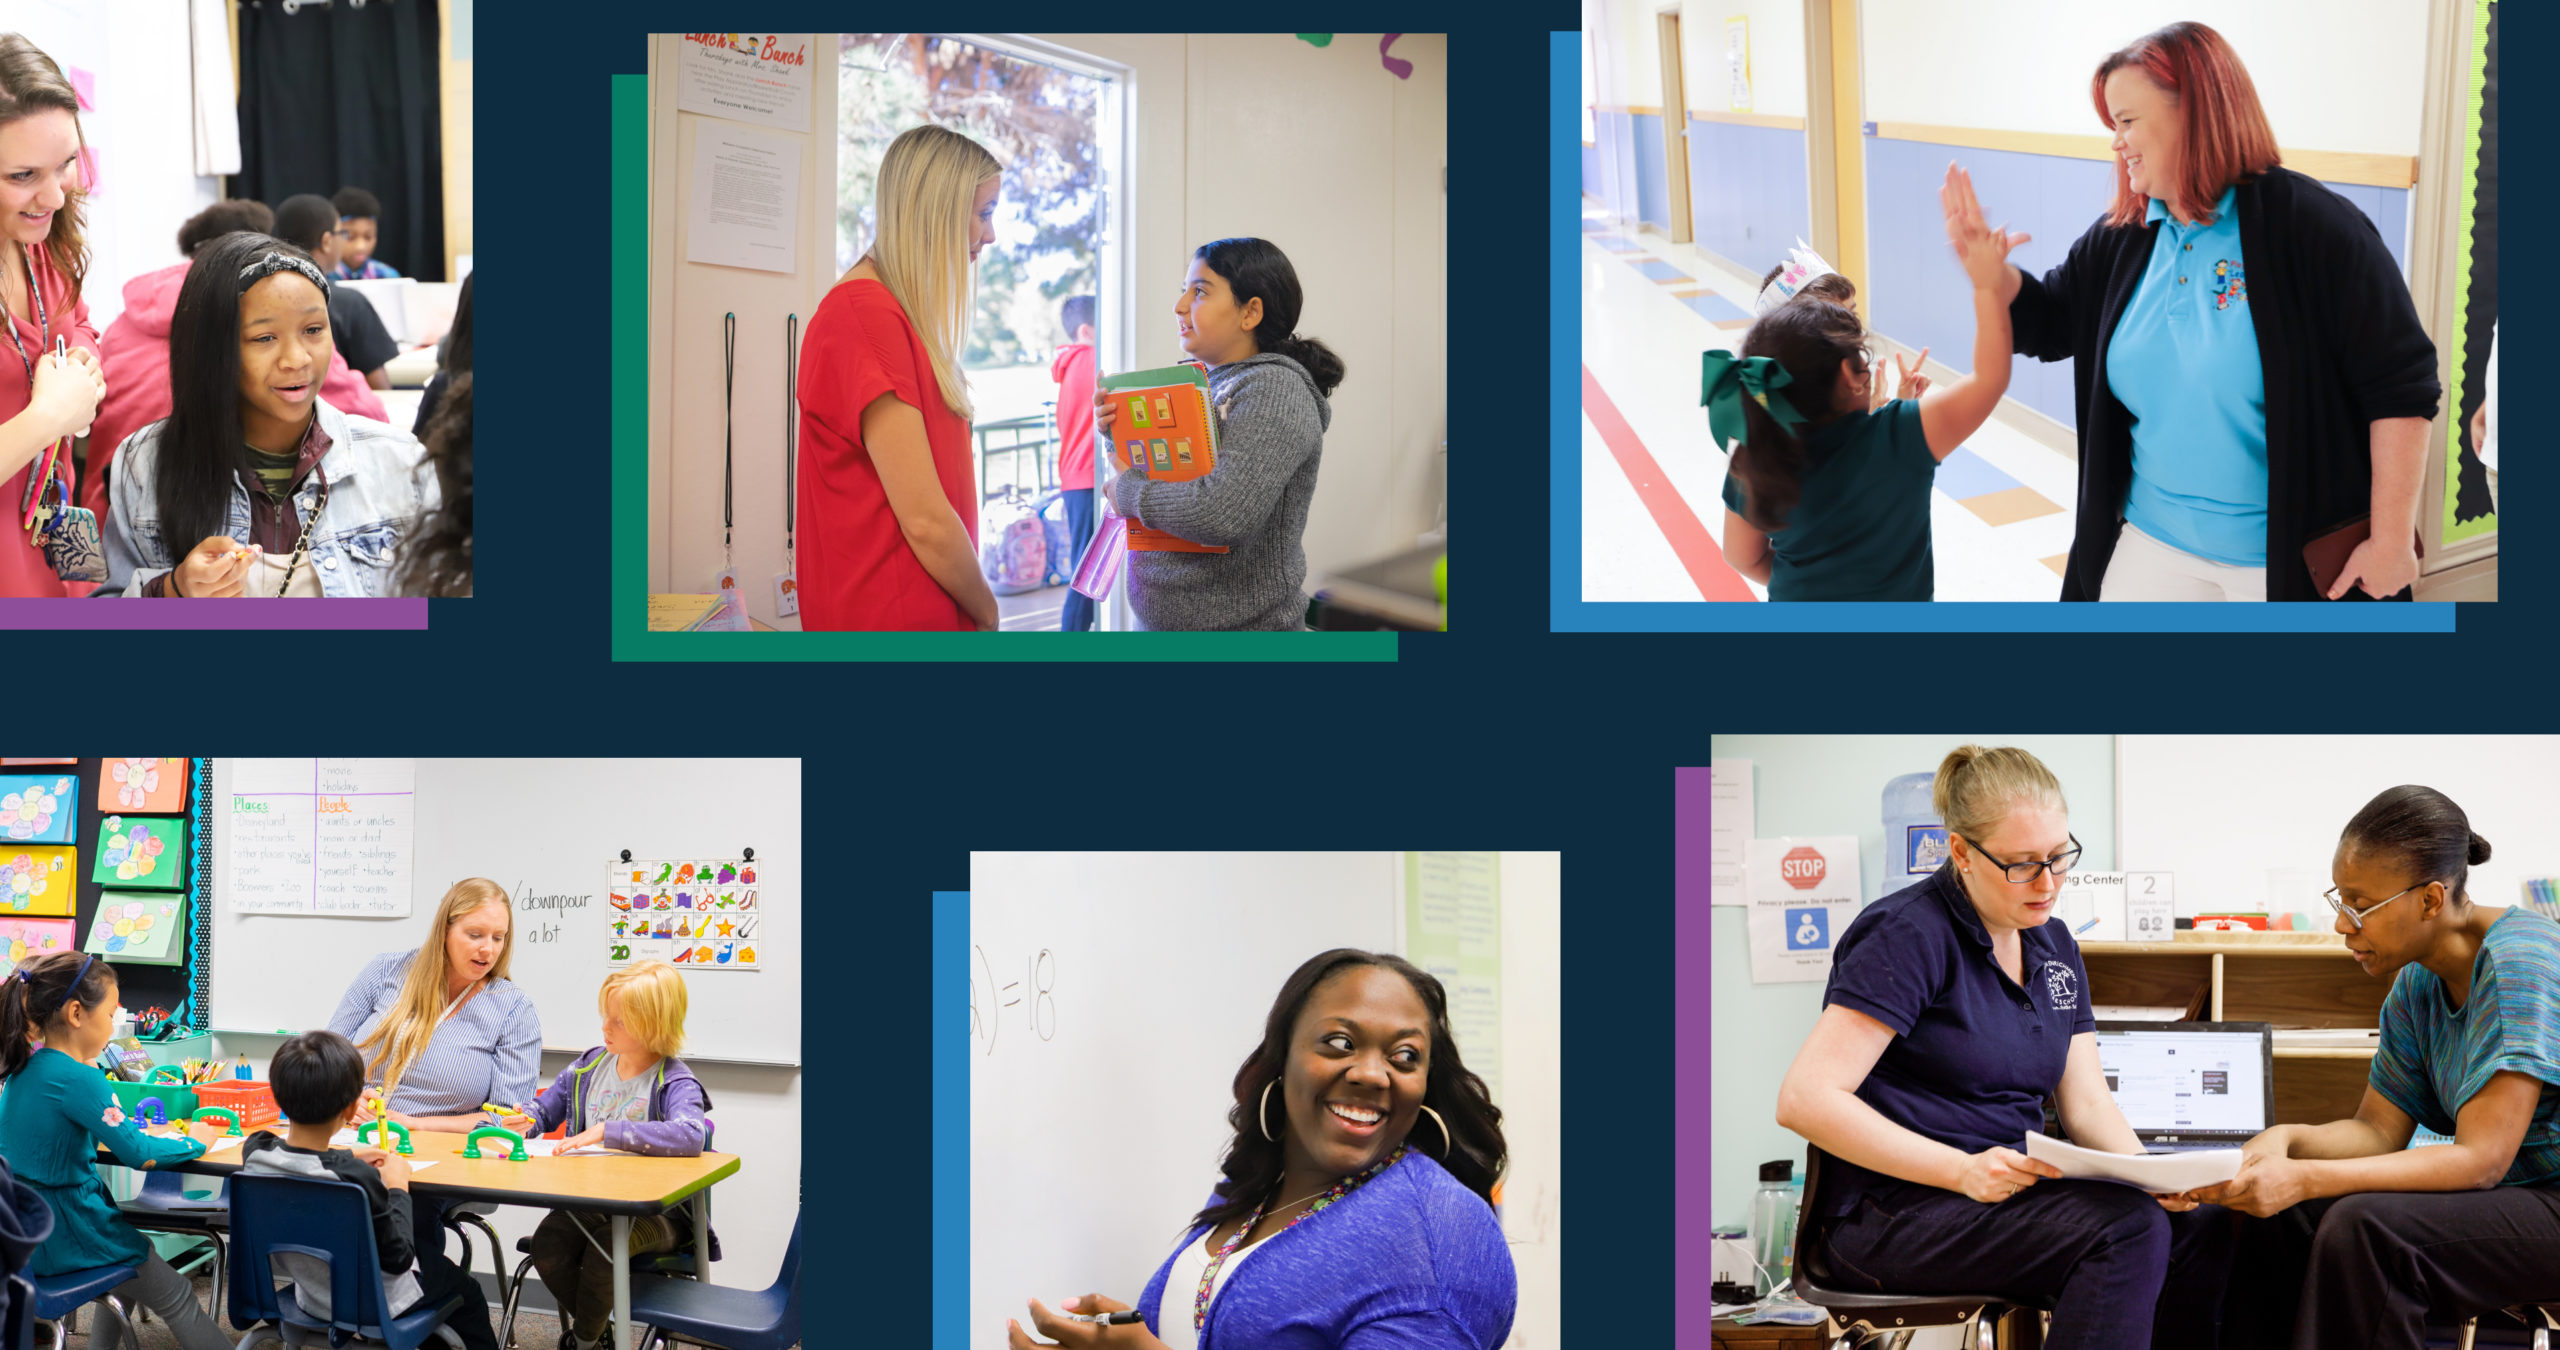 a collage photographs of educators interacting with students